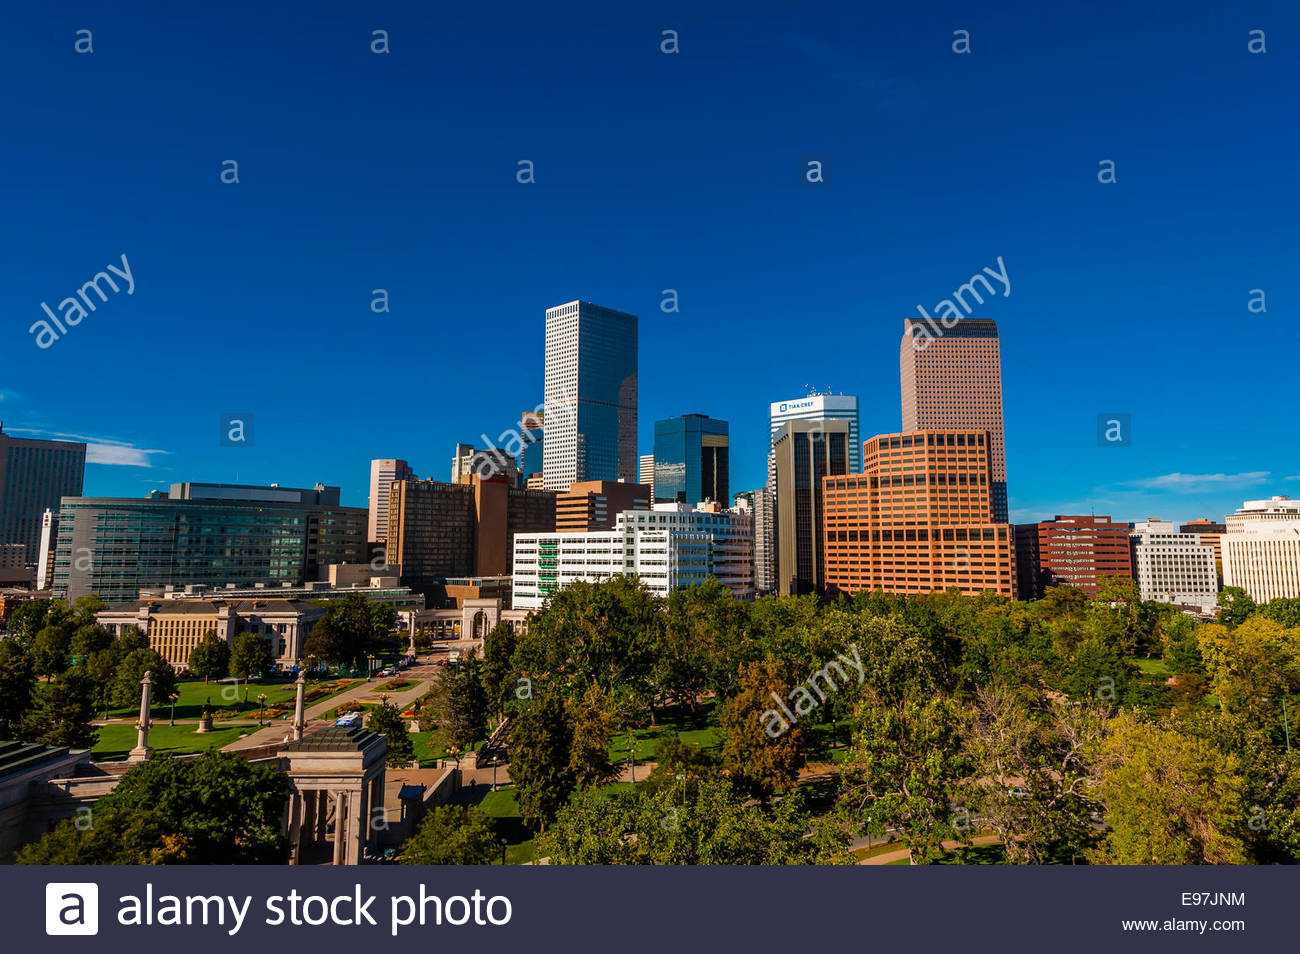 Downtown Denver skyline with Civic Center Park in foreground, Denver, Colorado USA. - Stock Image